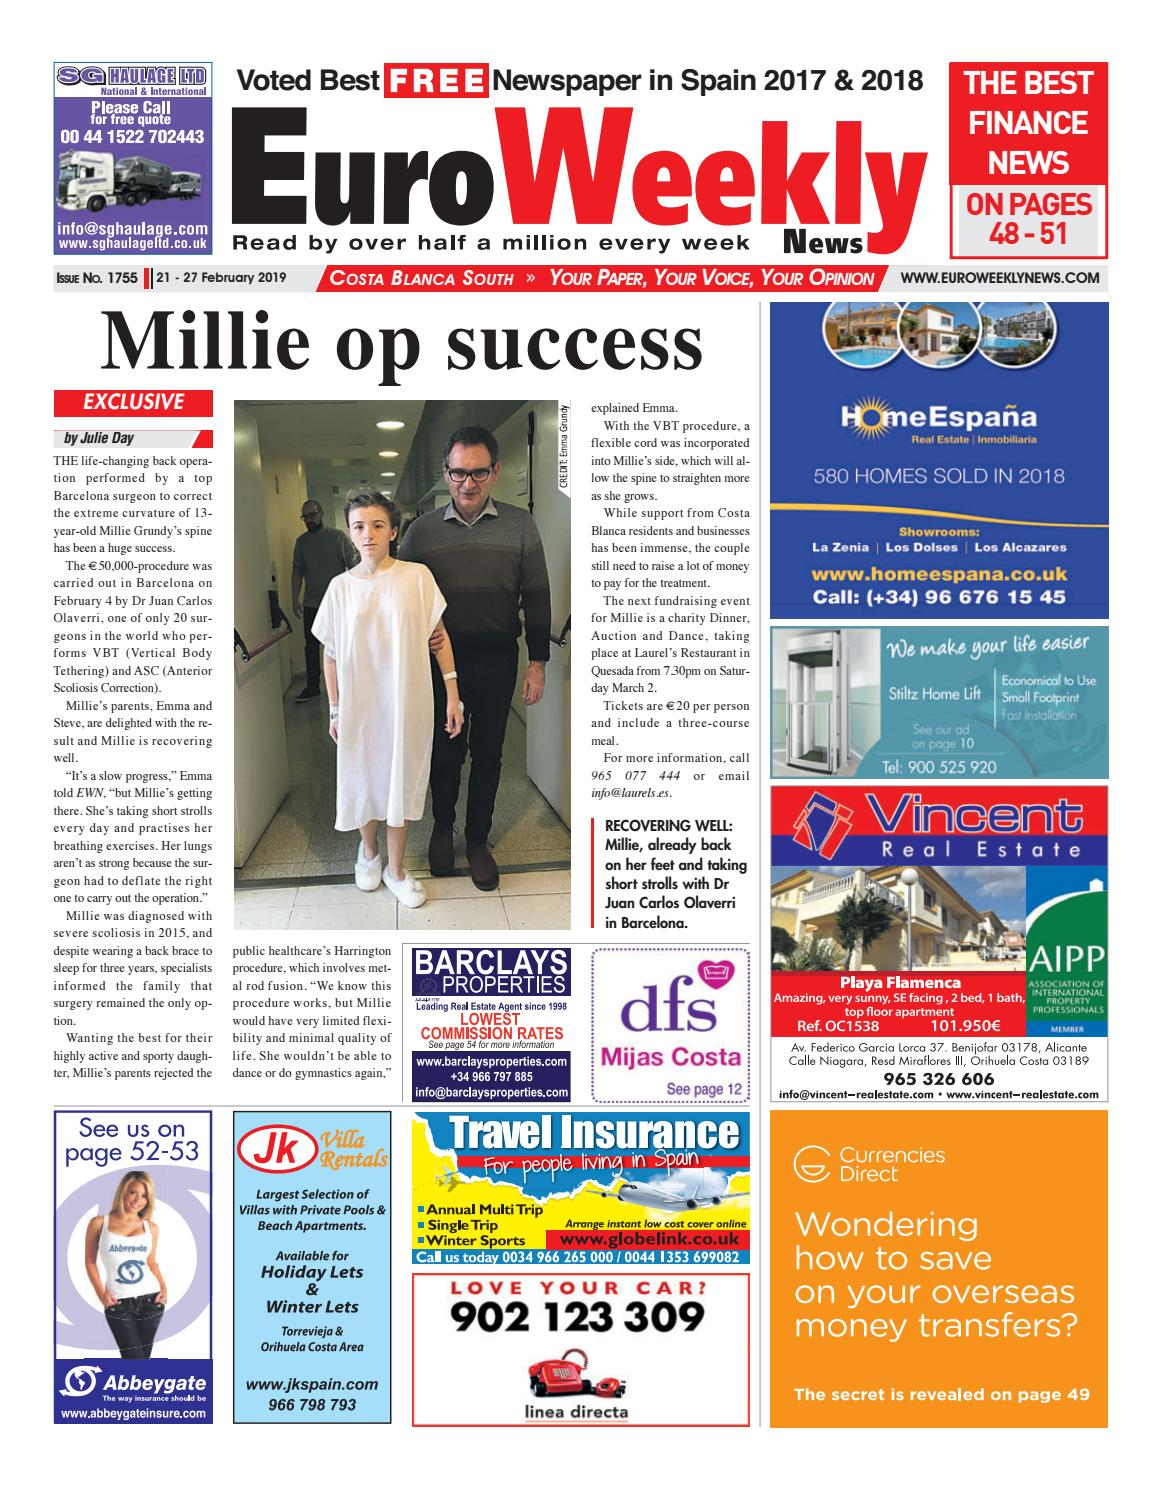 Euro Weekly News - Costa Blanca South 21 - 27 Feb 2019 Issue 1755 by Euro  Weekly News Media S.A. - issuu 5e80cbd94